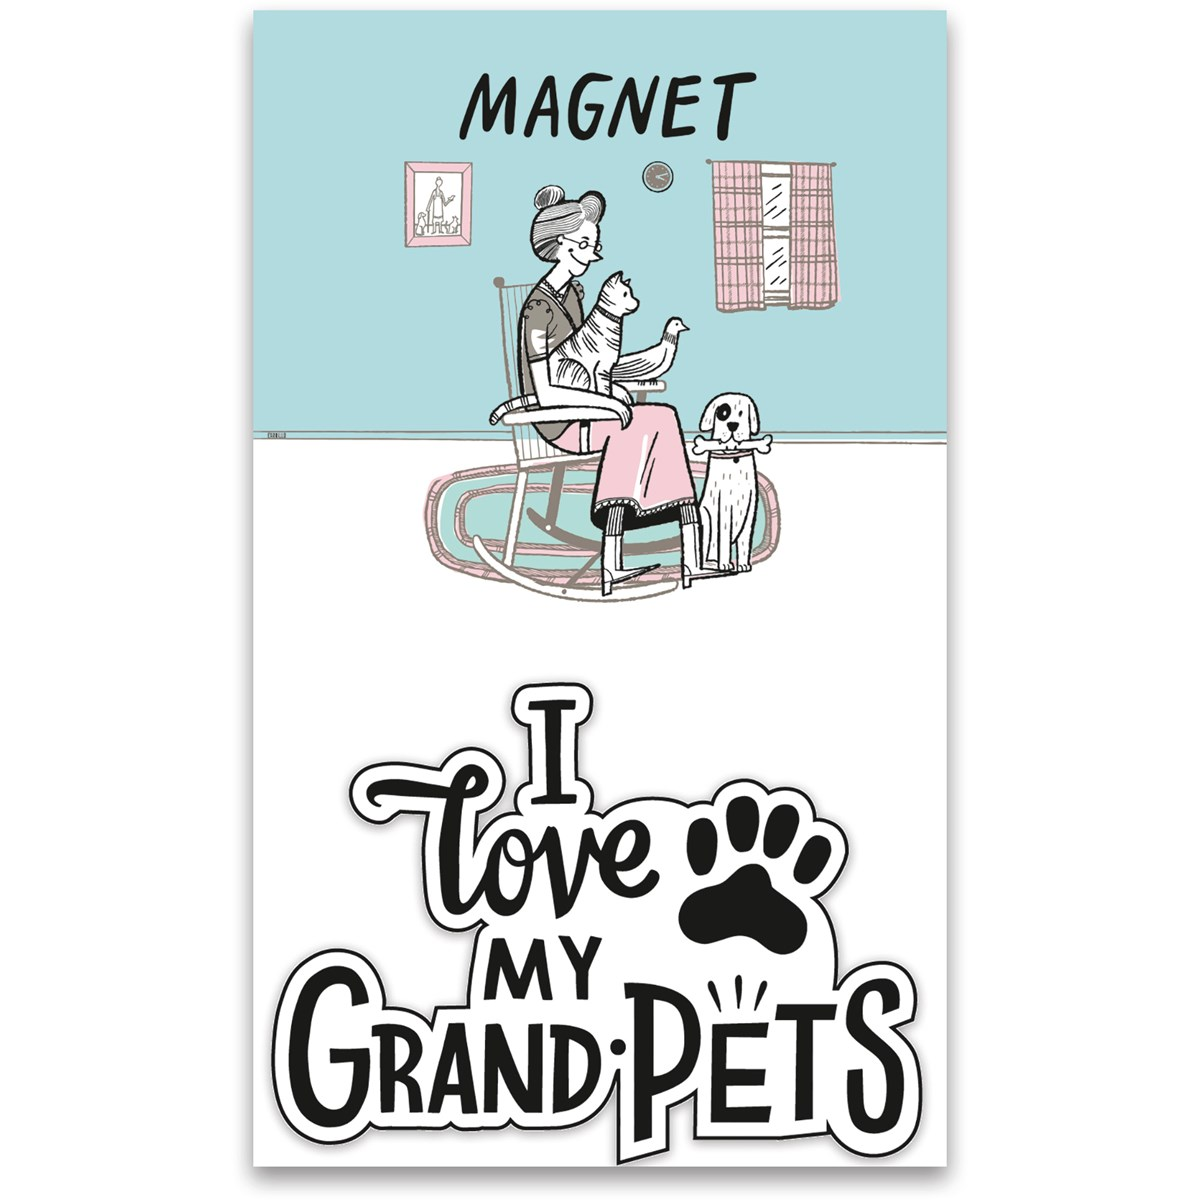 "Magnet - I Love My Grandpets   - 3"" x 2"", Card: 3"" x 5"" - Magnet, Paper"